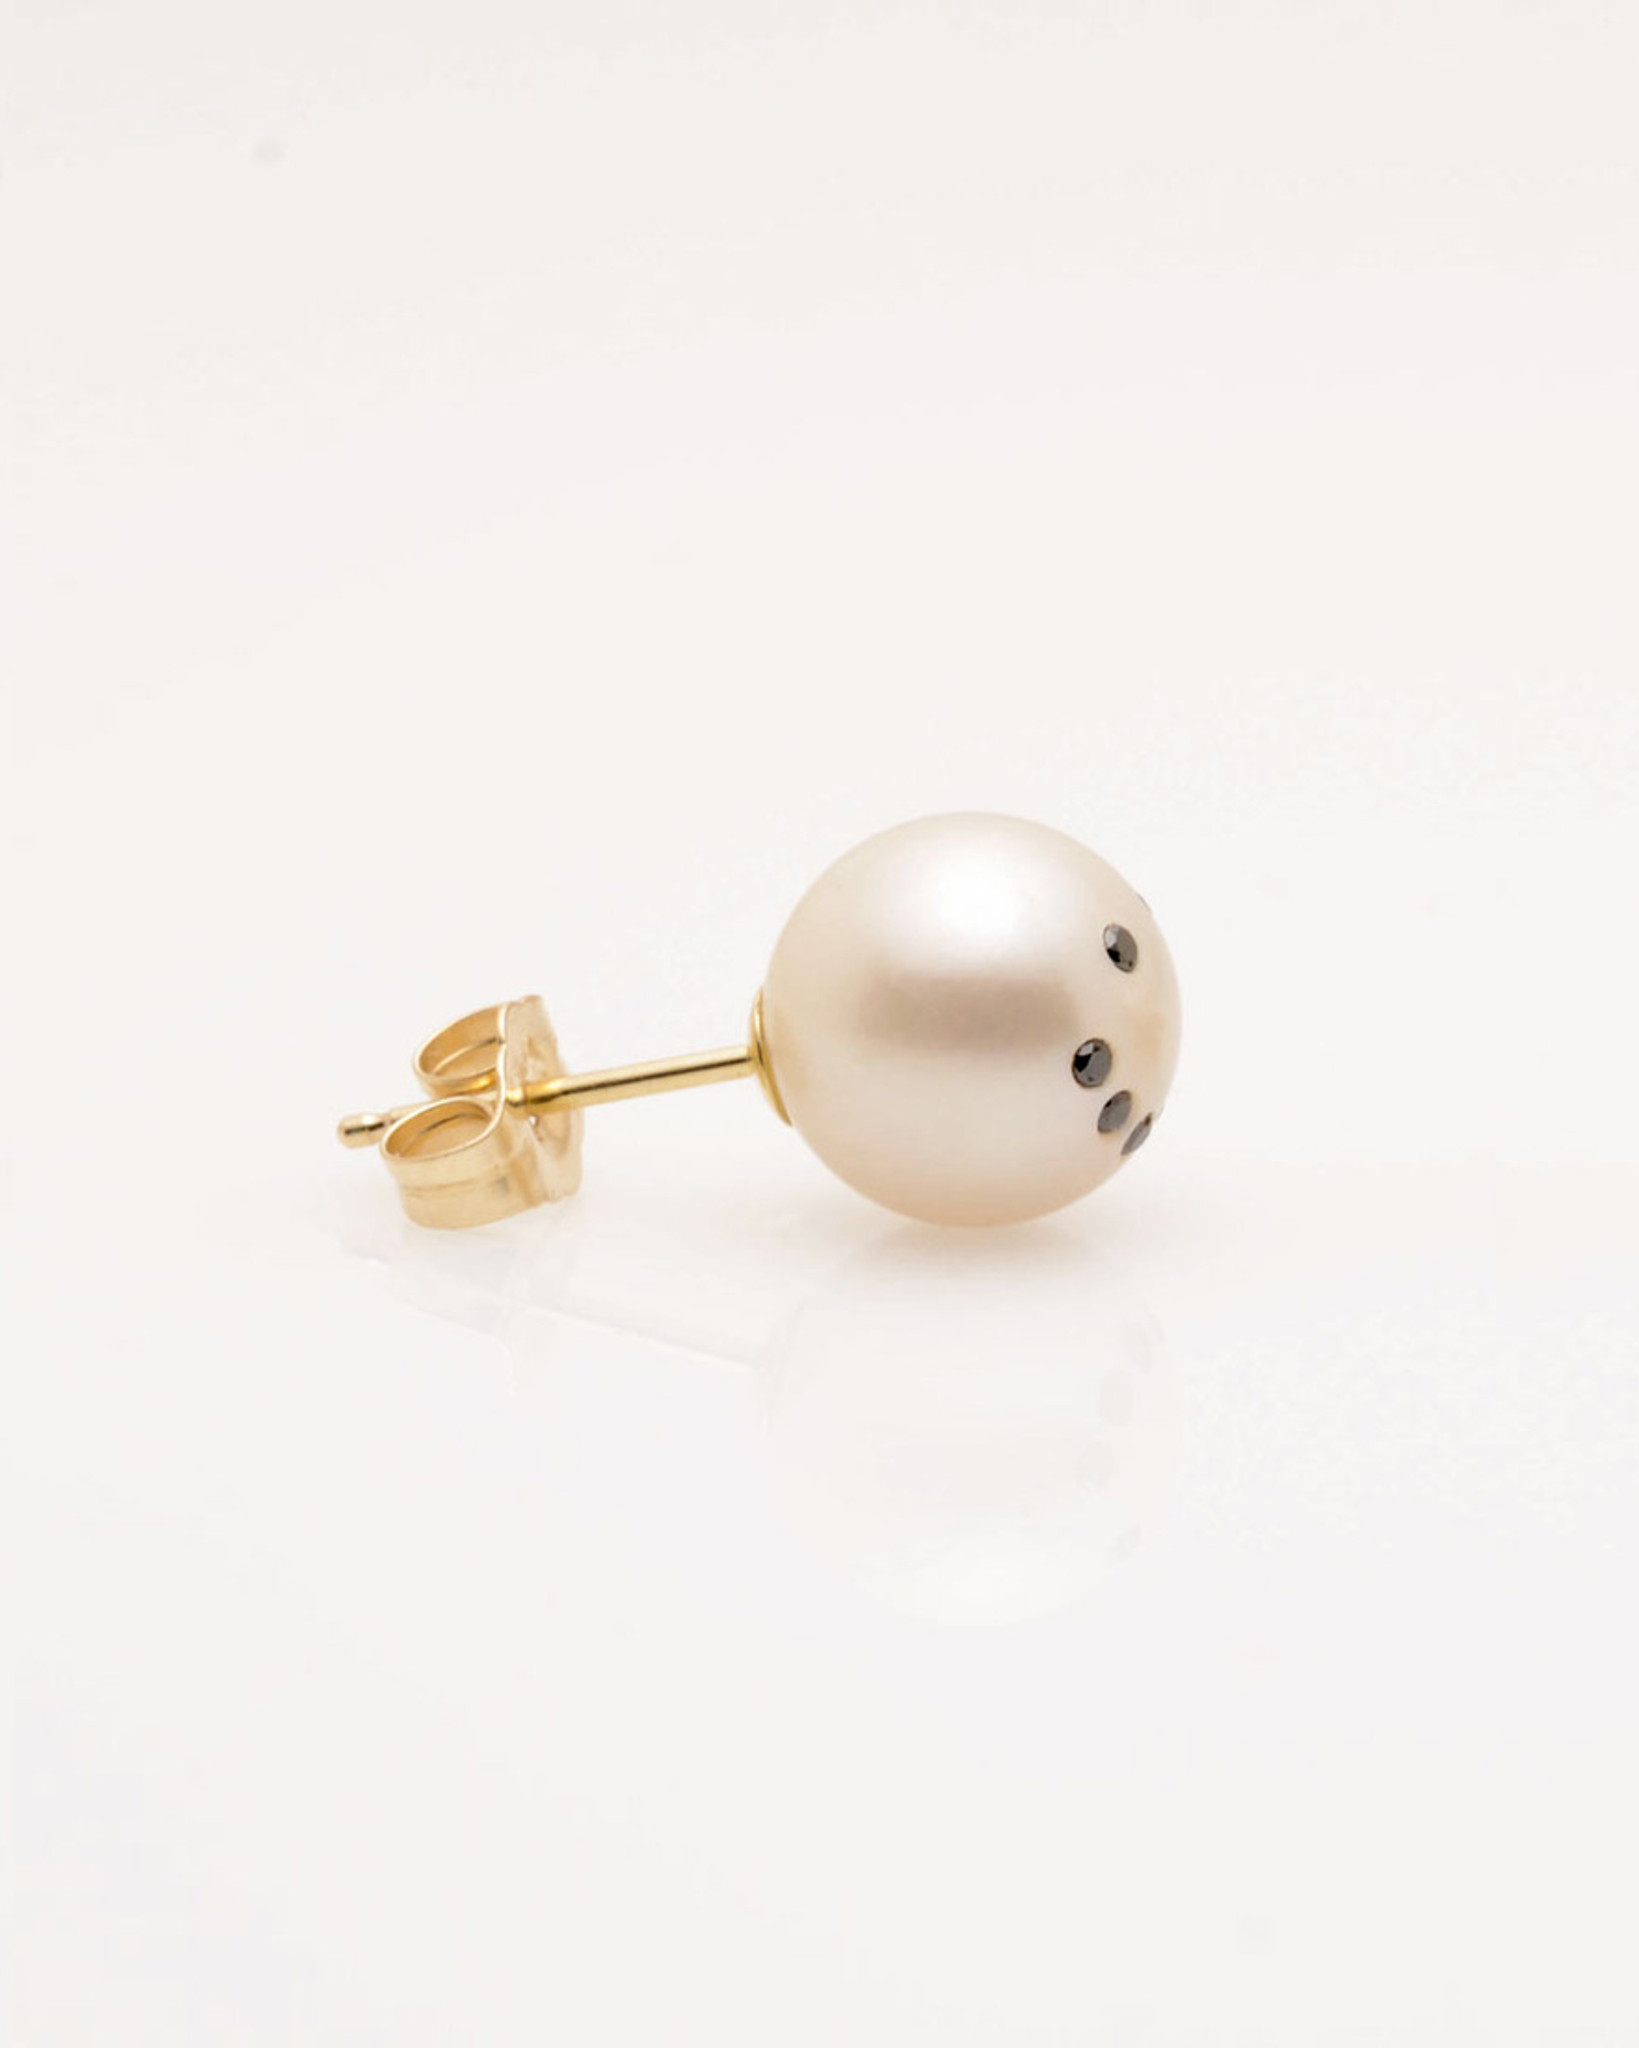 single designs jewellery earrings products collections pearl lush hook